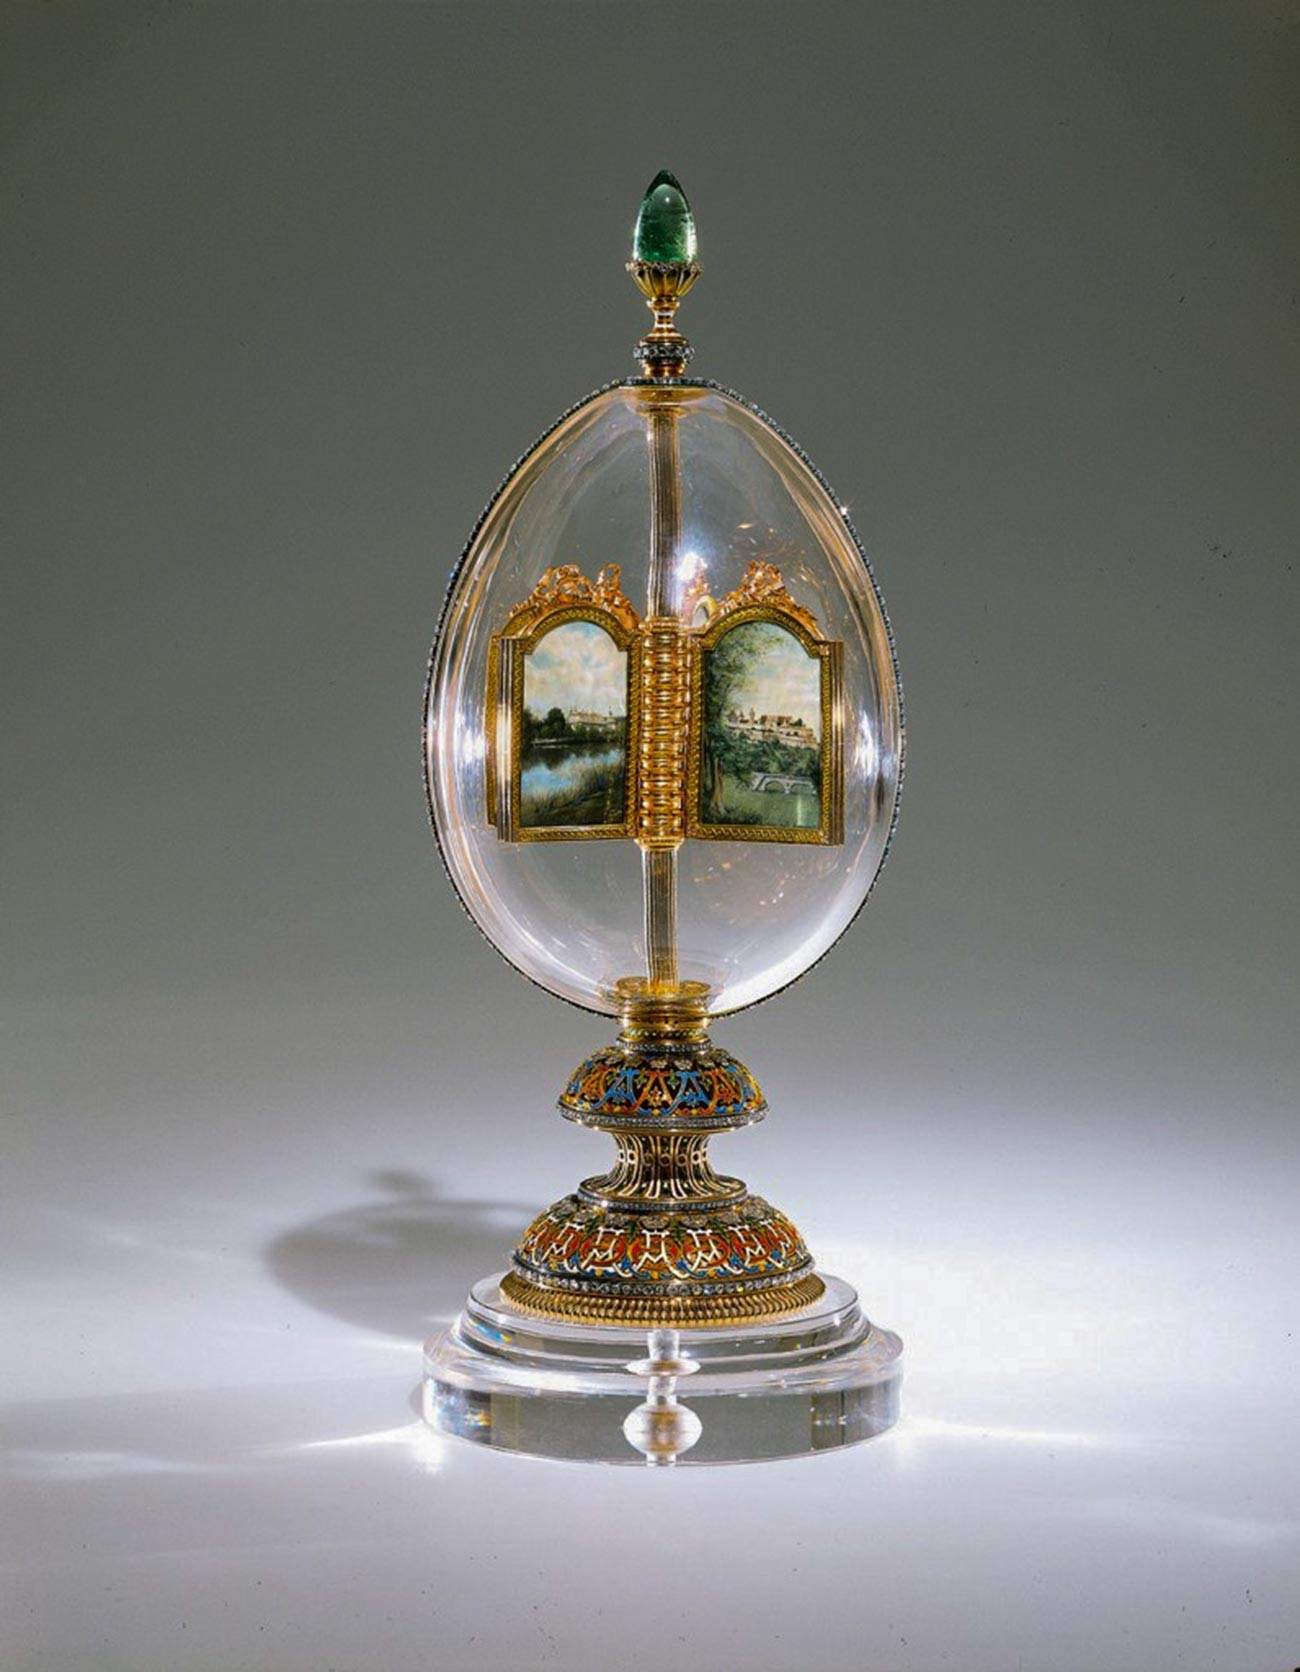 The Revolving Miniatures Faberge egg